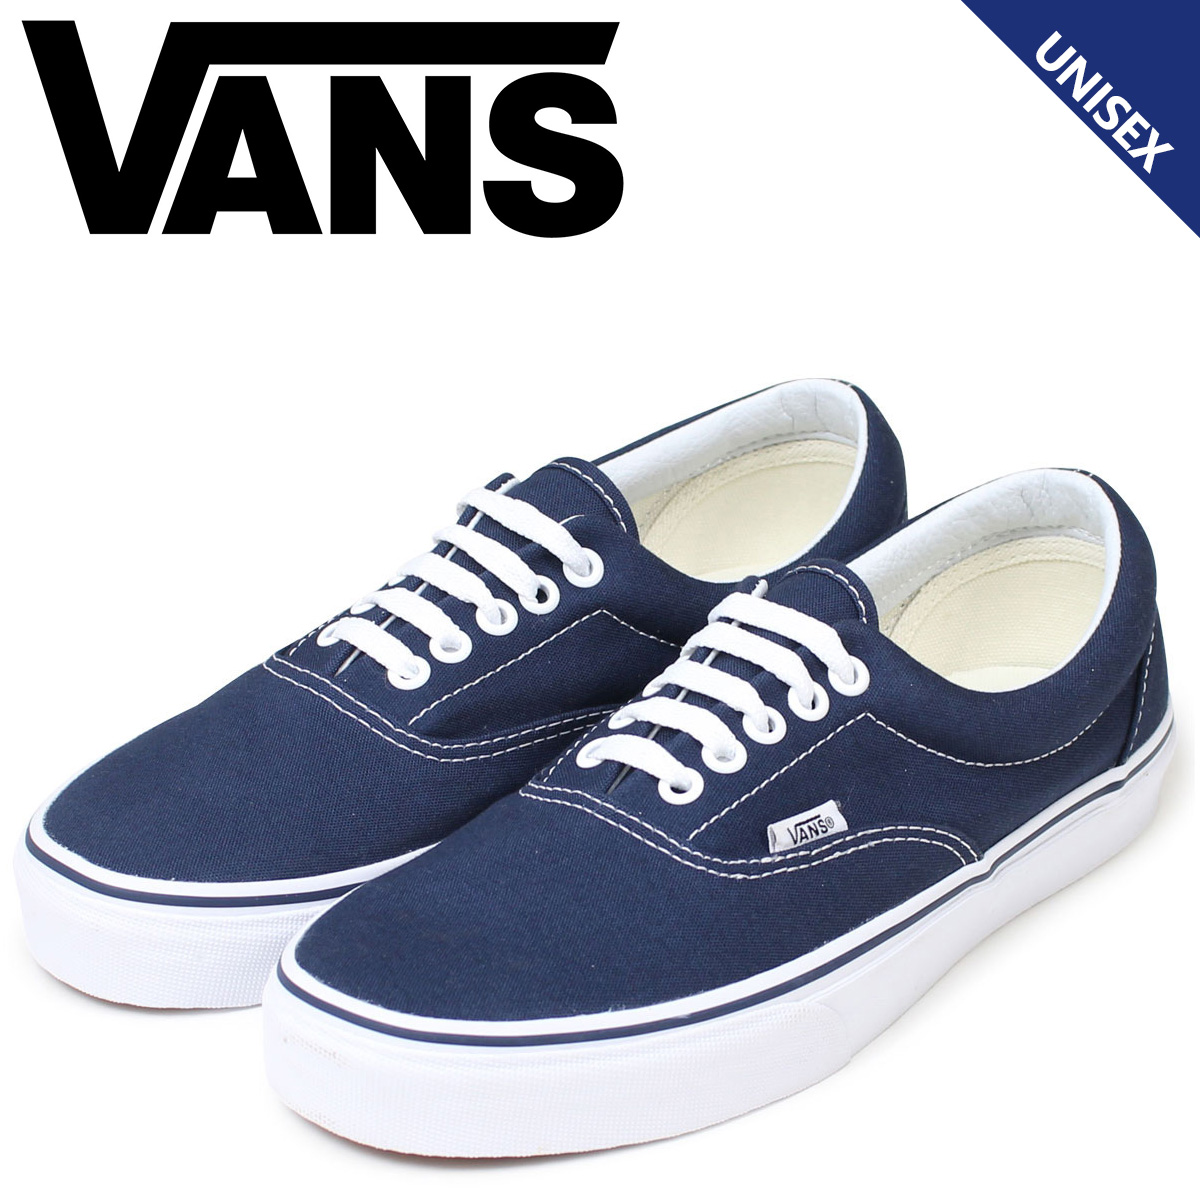 SneaK Online Market: Shop | Rakuten Global Market: Online VANS ERA vans slip-ons gills men gap Dis sneakers station wagons VN000EWZNVY shoes navy [load planned Shinnyu load in reservation product 12/29 containing] 4a0b2e